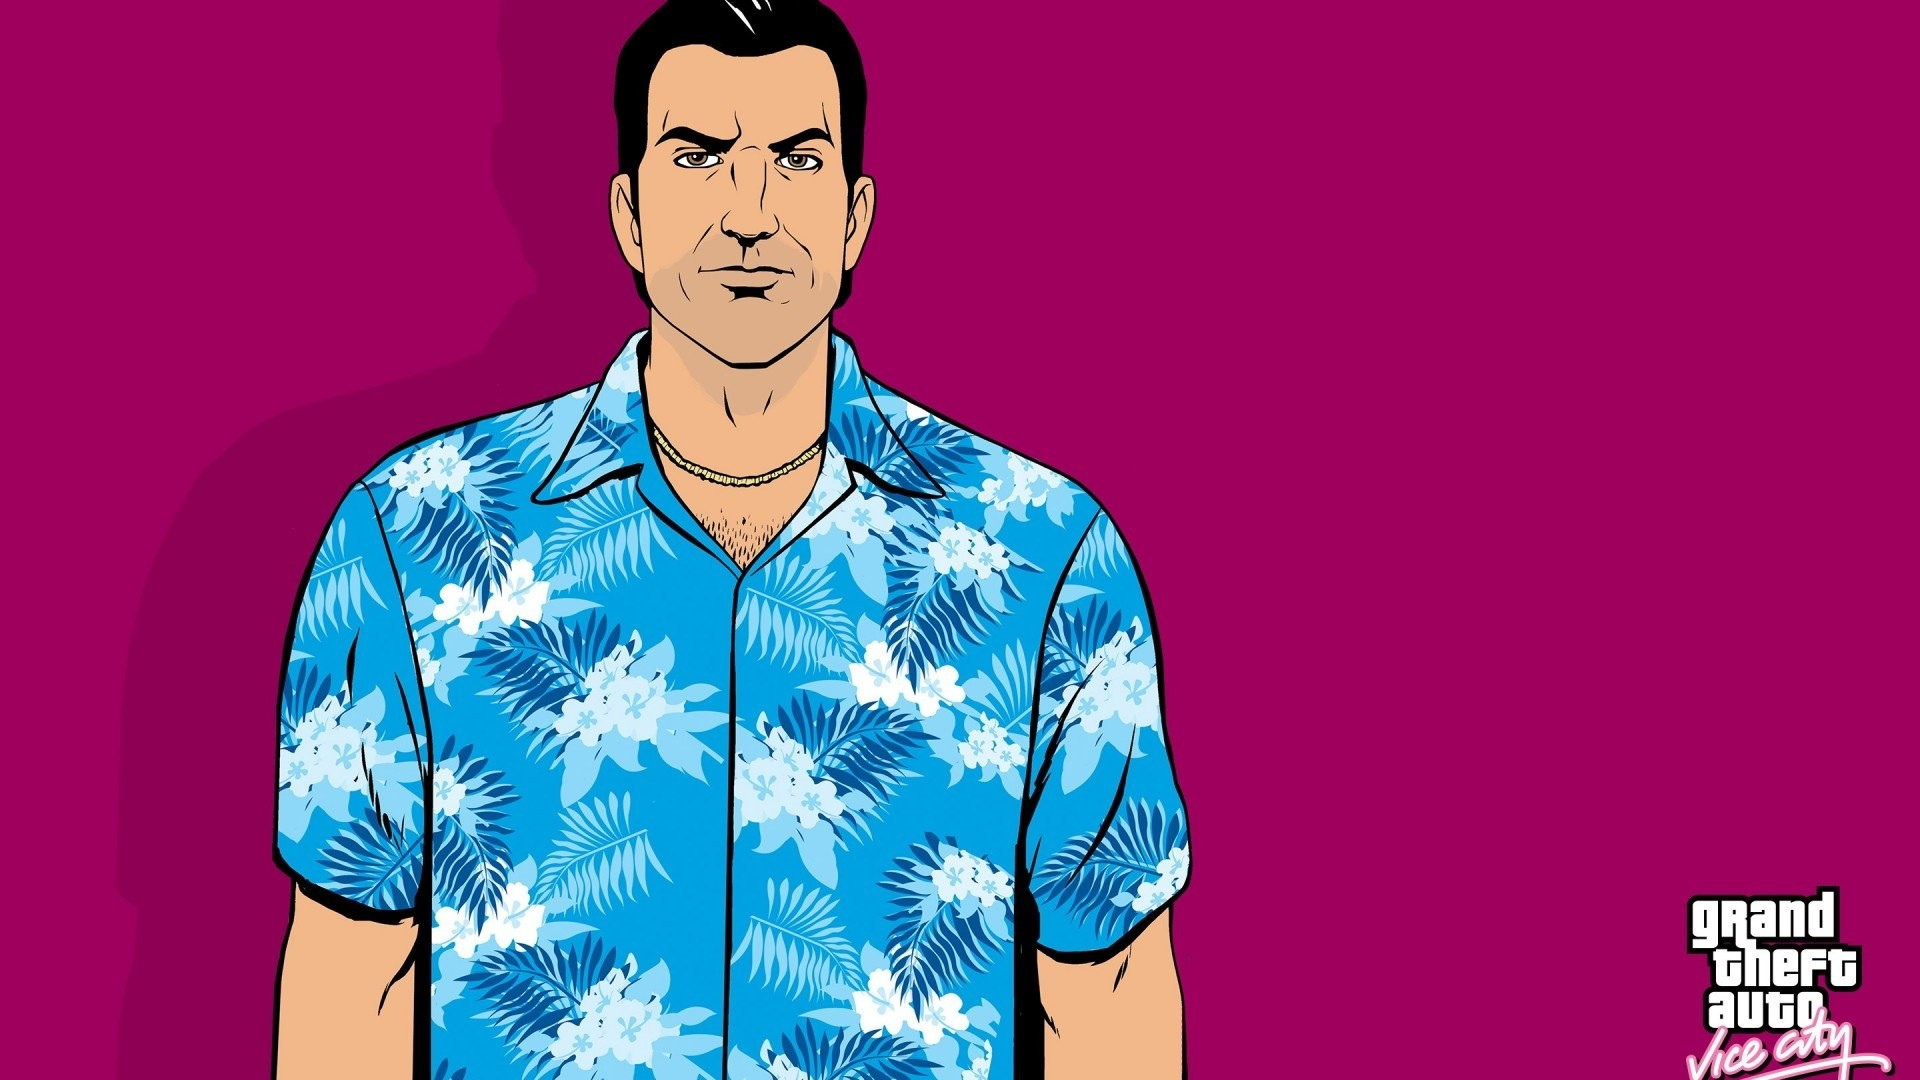 1920x1080 43986c gta vice city tommy vercetti grand theft auto   wallpaper452450